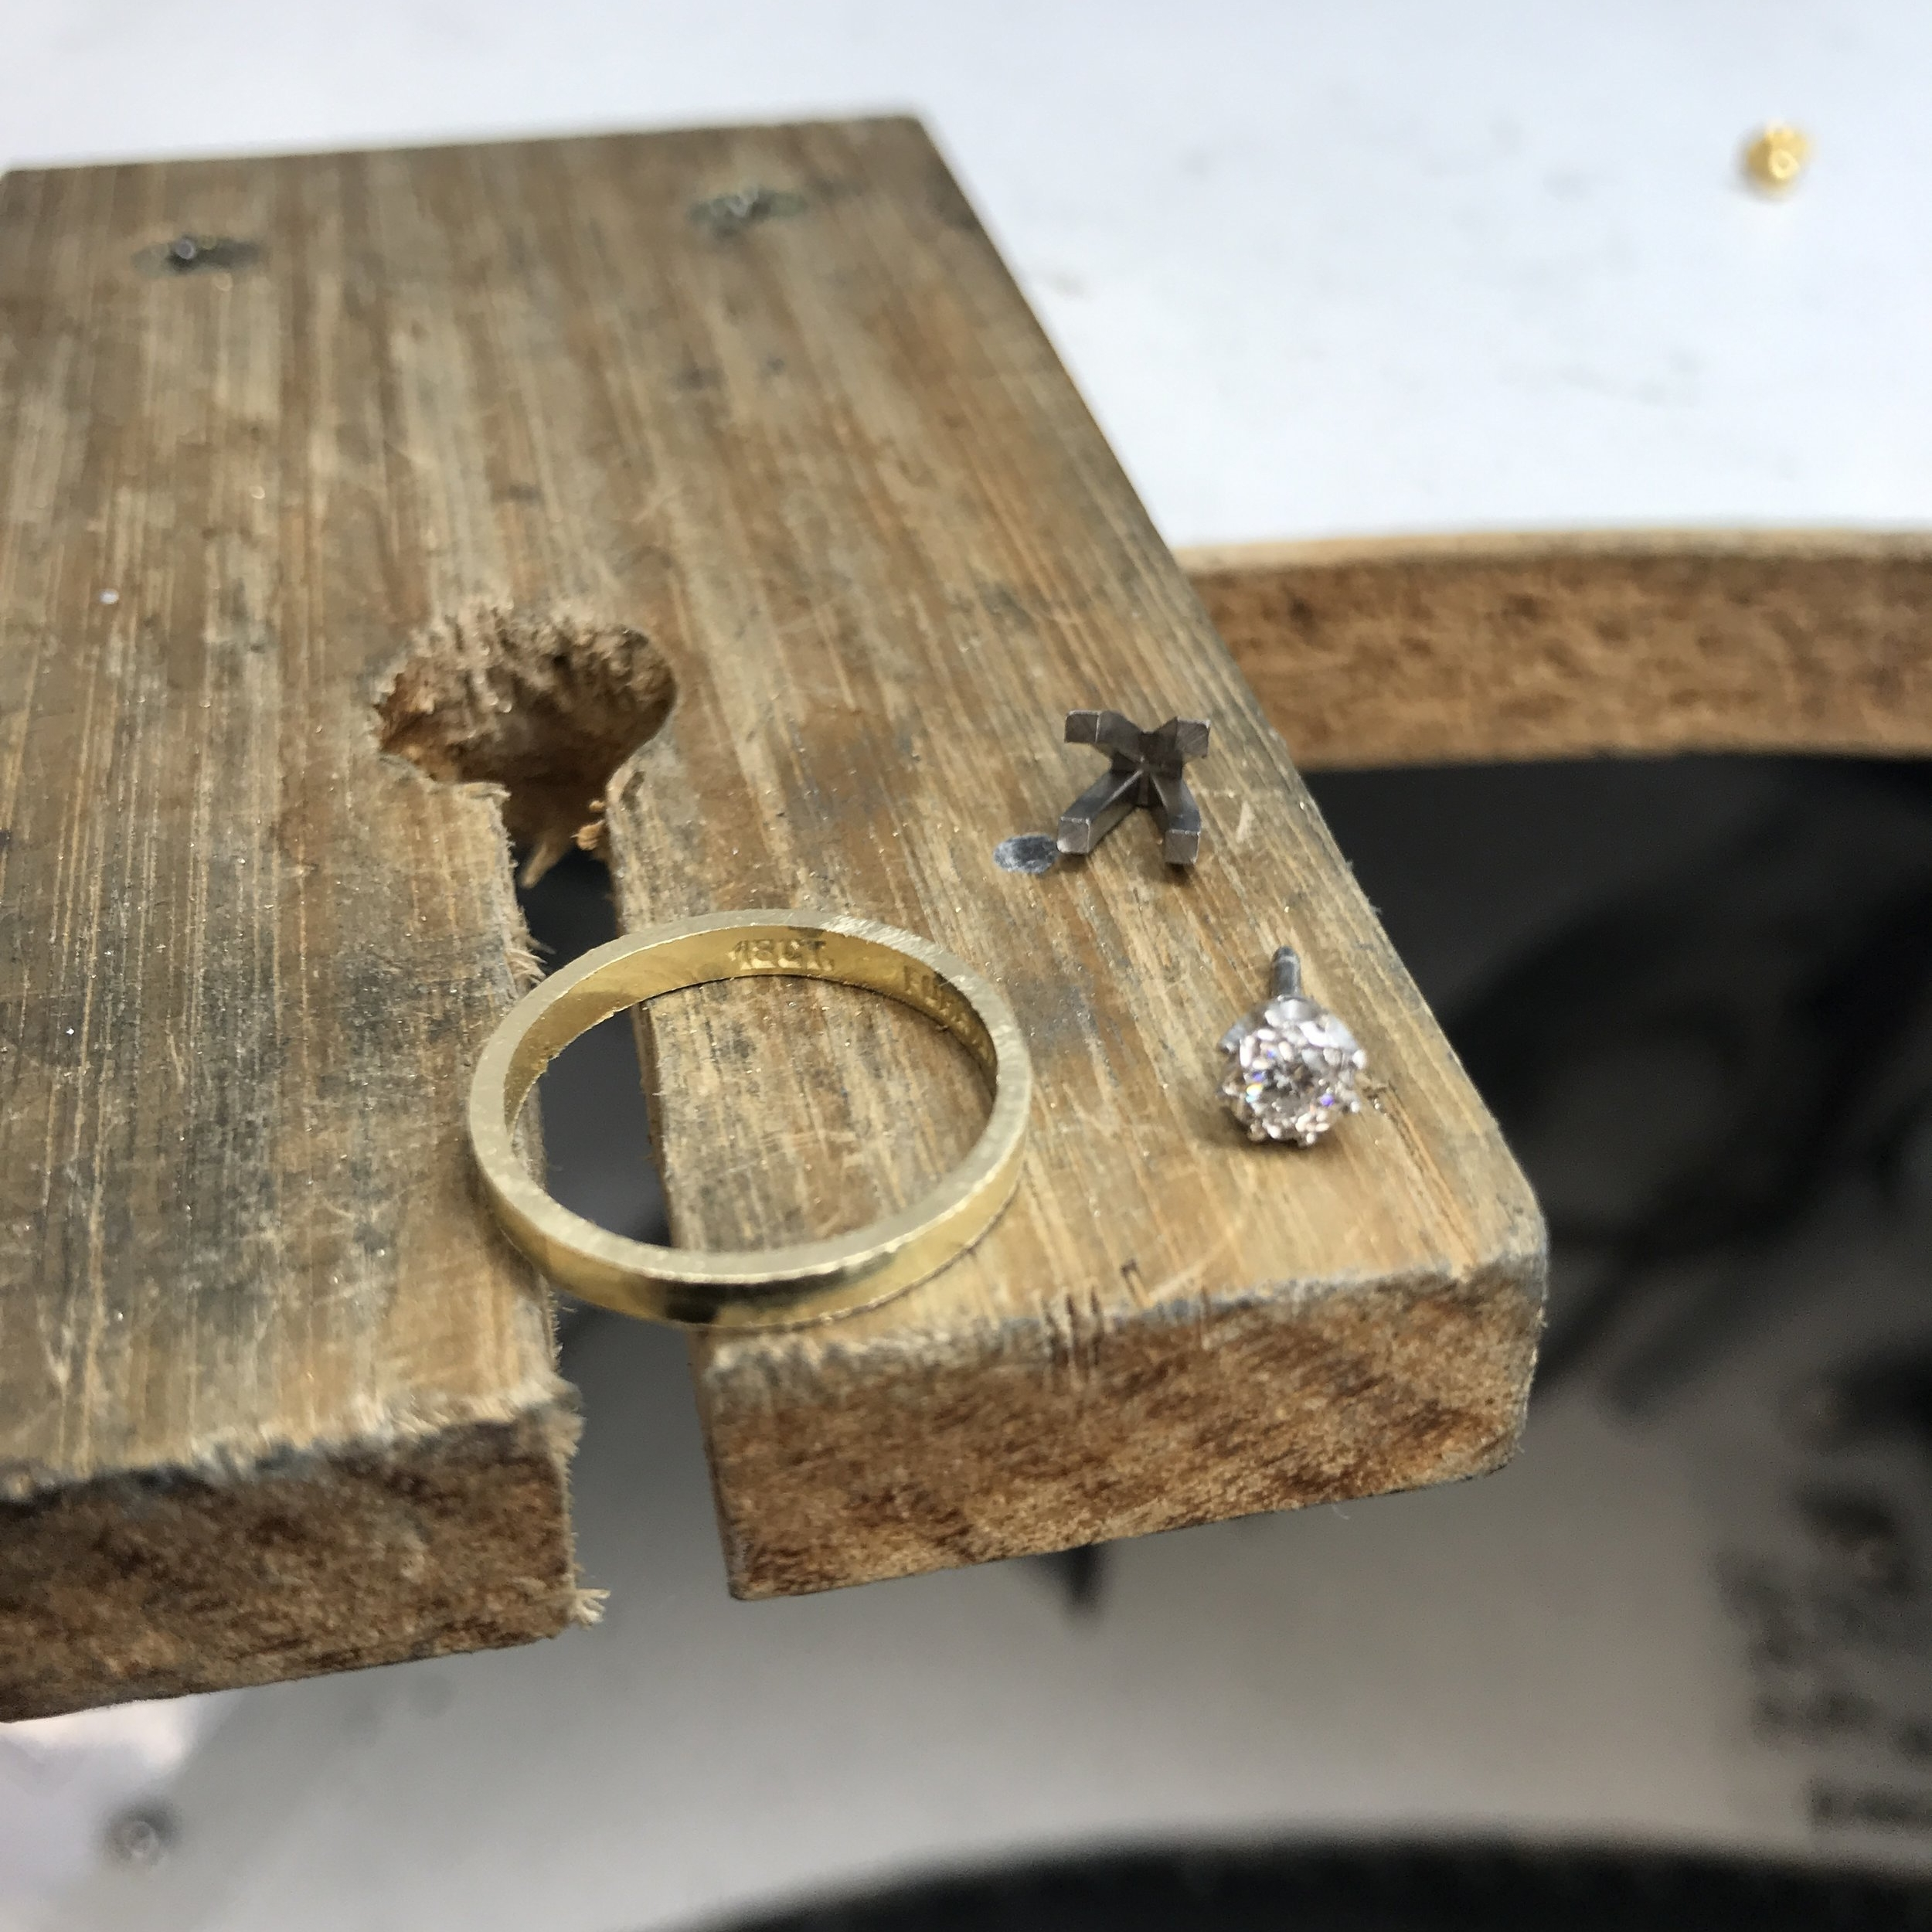 From the workshop, creating a new setting for Rachel's diamond.